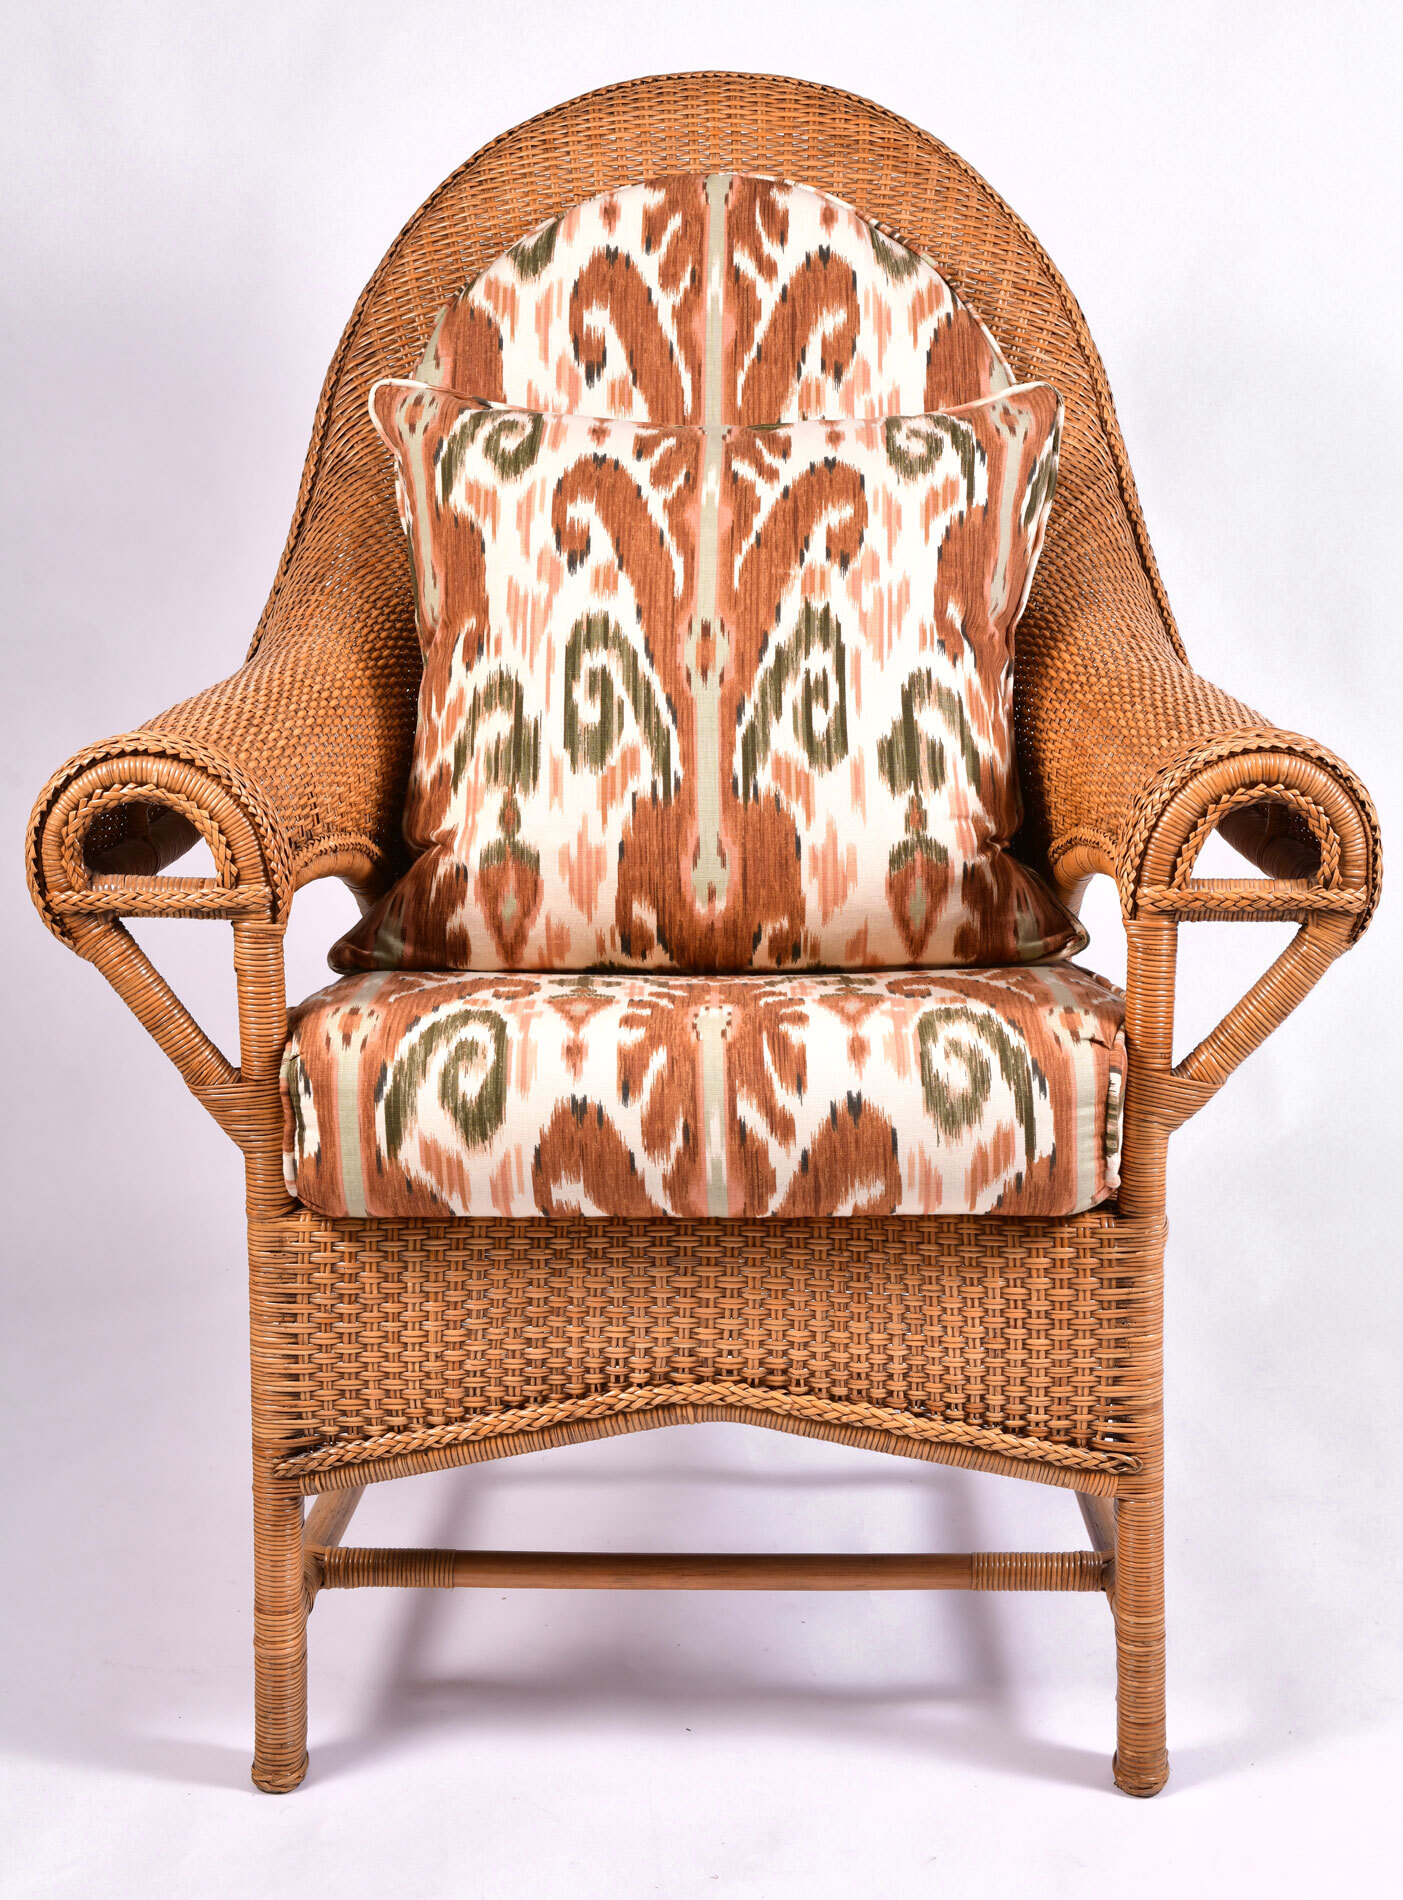 The image for Pair Us Wicker Armchairs 02